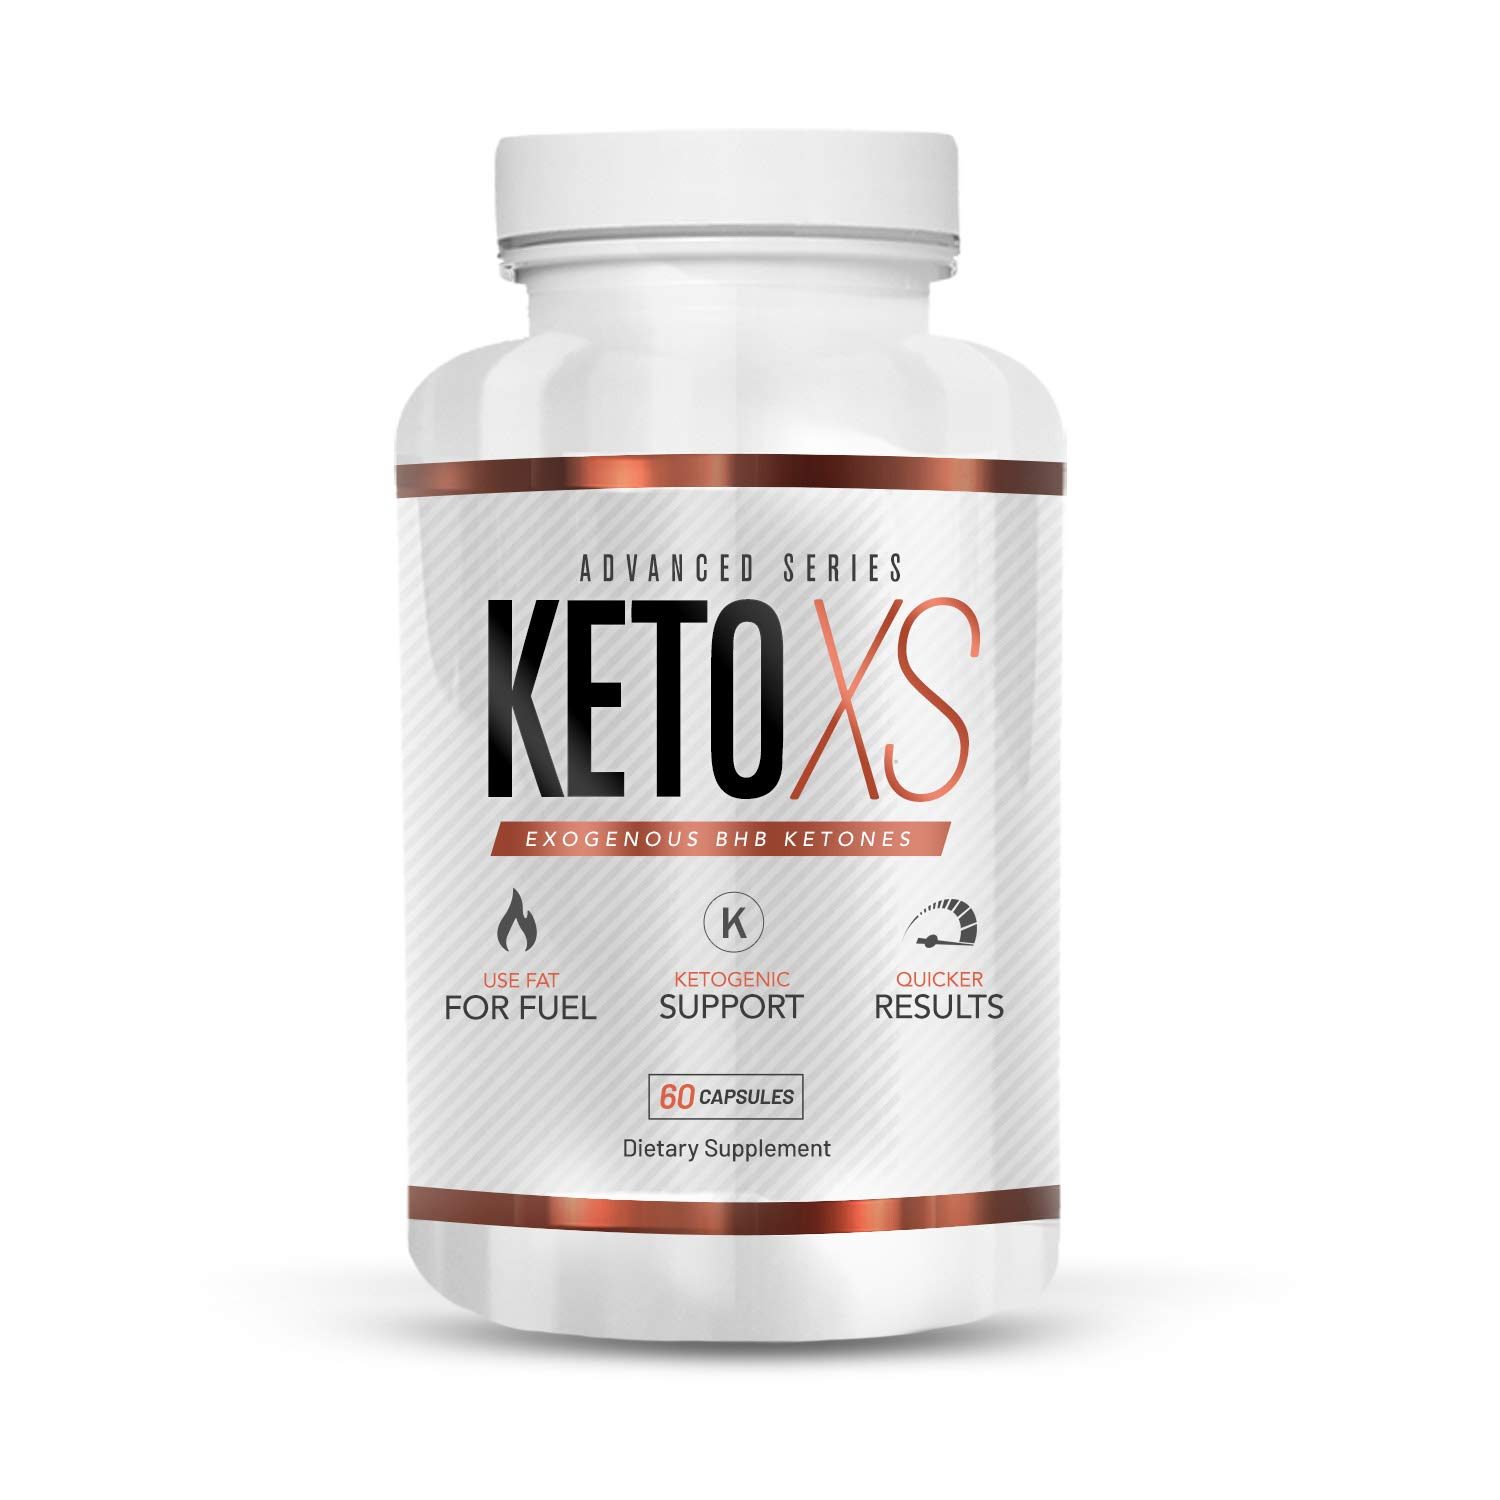 KetoXS Exogenous BHB Ketones Supplement - Weight Loss and Keto Diet Support